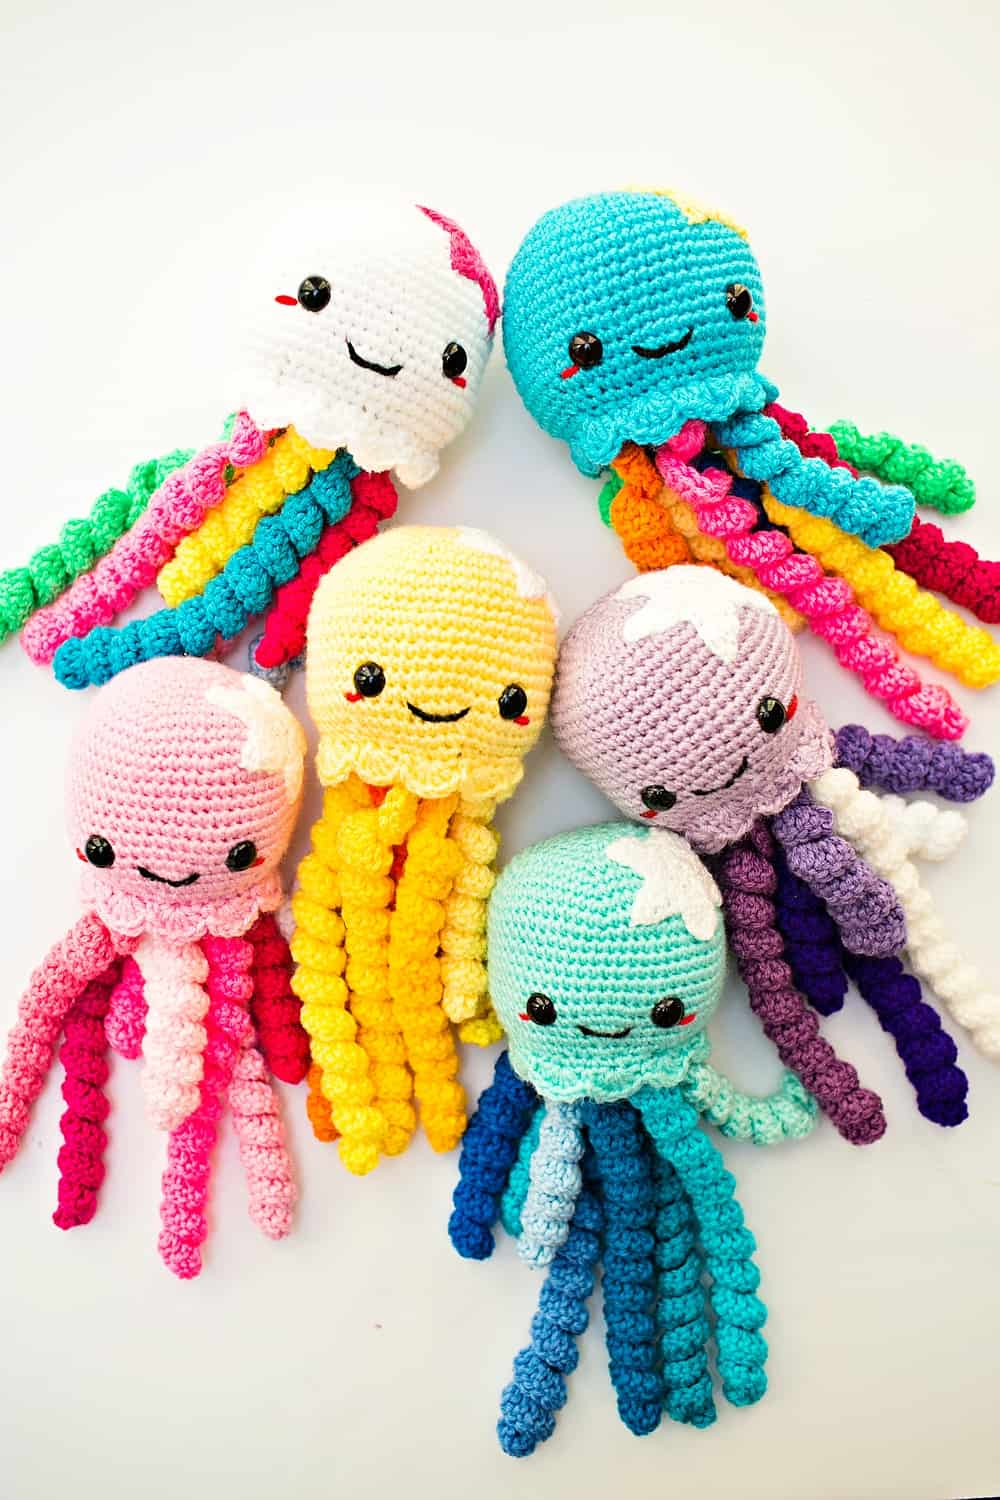 Amigurumi Crochet Sea Creature Animal Toy Free Patterns | Crochet ... | 1500x1000